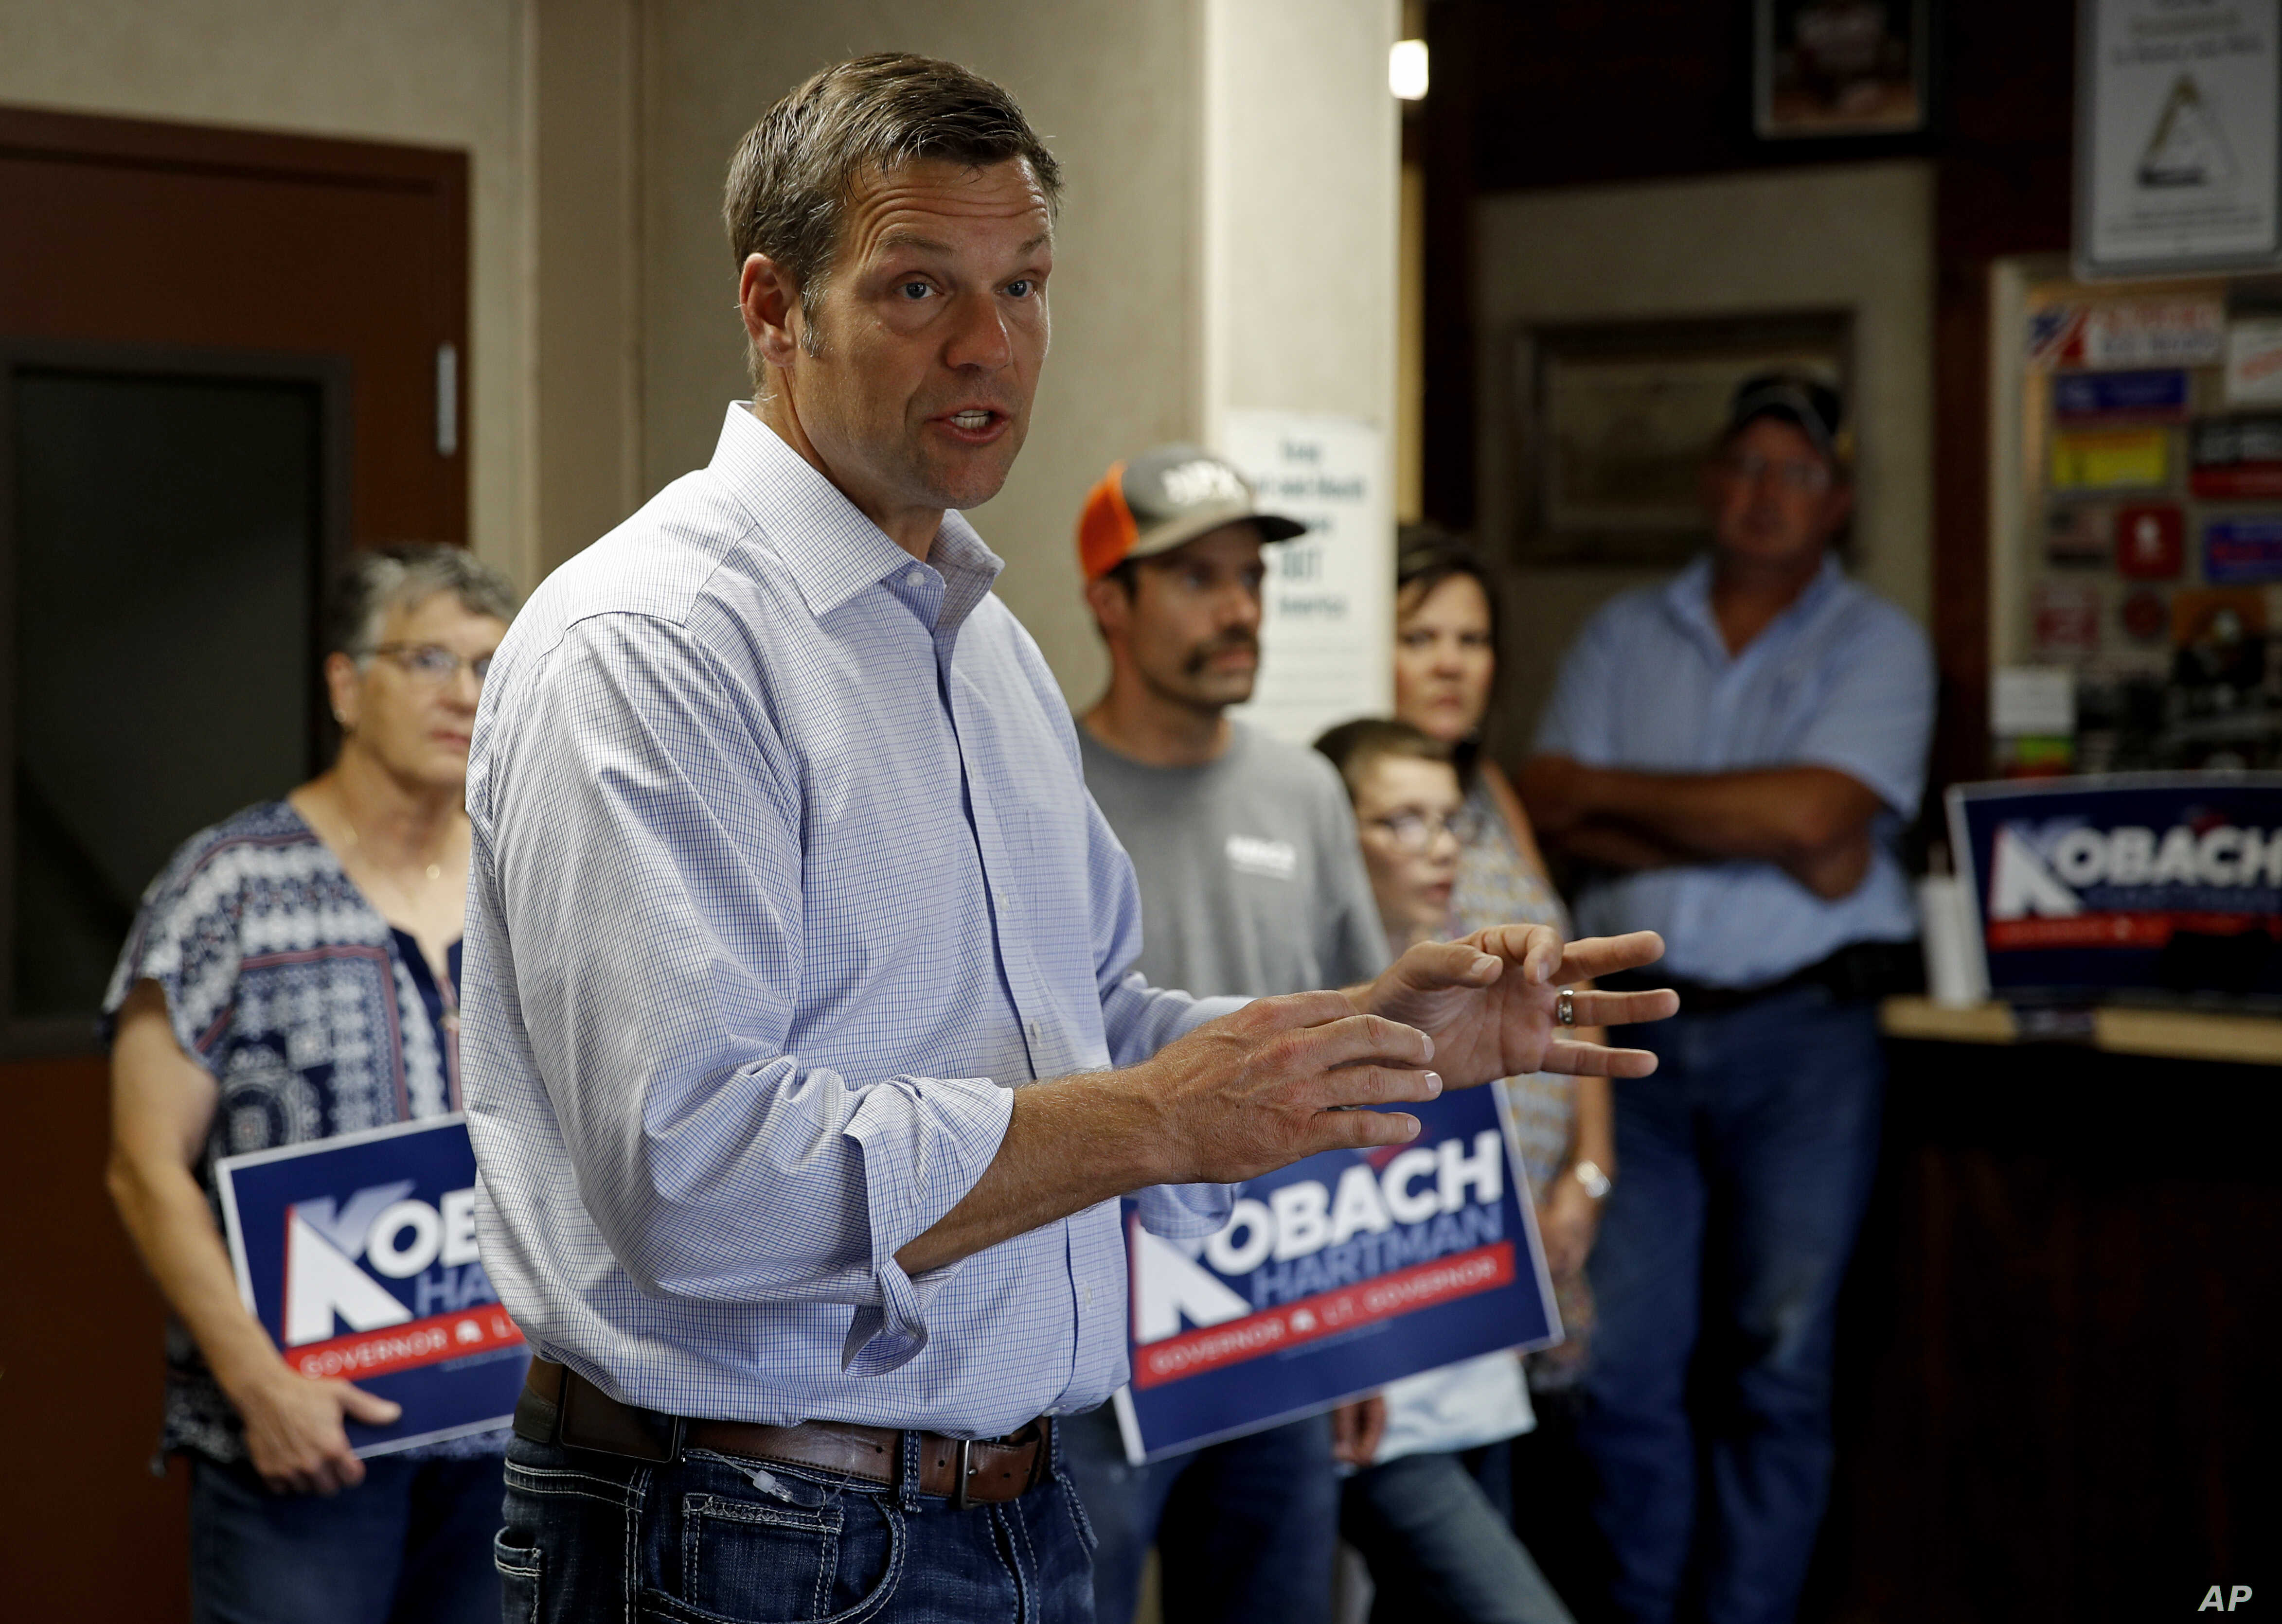 Kansas Secretary of State Kris Kobach and candidate for the Republican nomination for Kansas Governor addresses supporters during a campaign stop, Aug. 3, 2018, at the Fort Scott Livestock Market in Fort Scott, Kan.